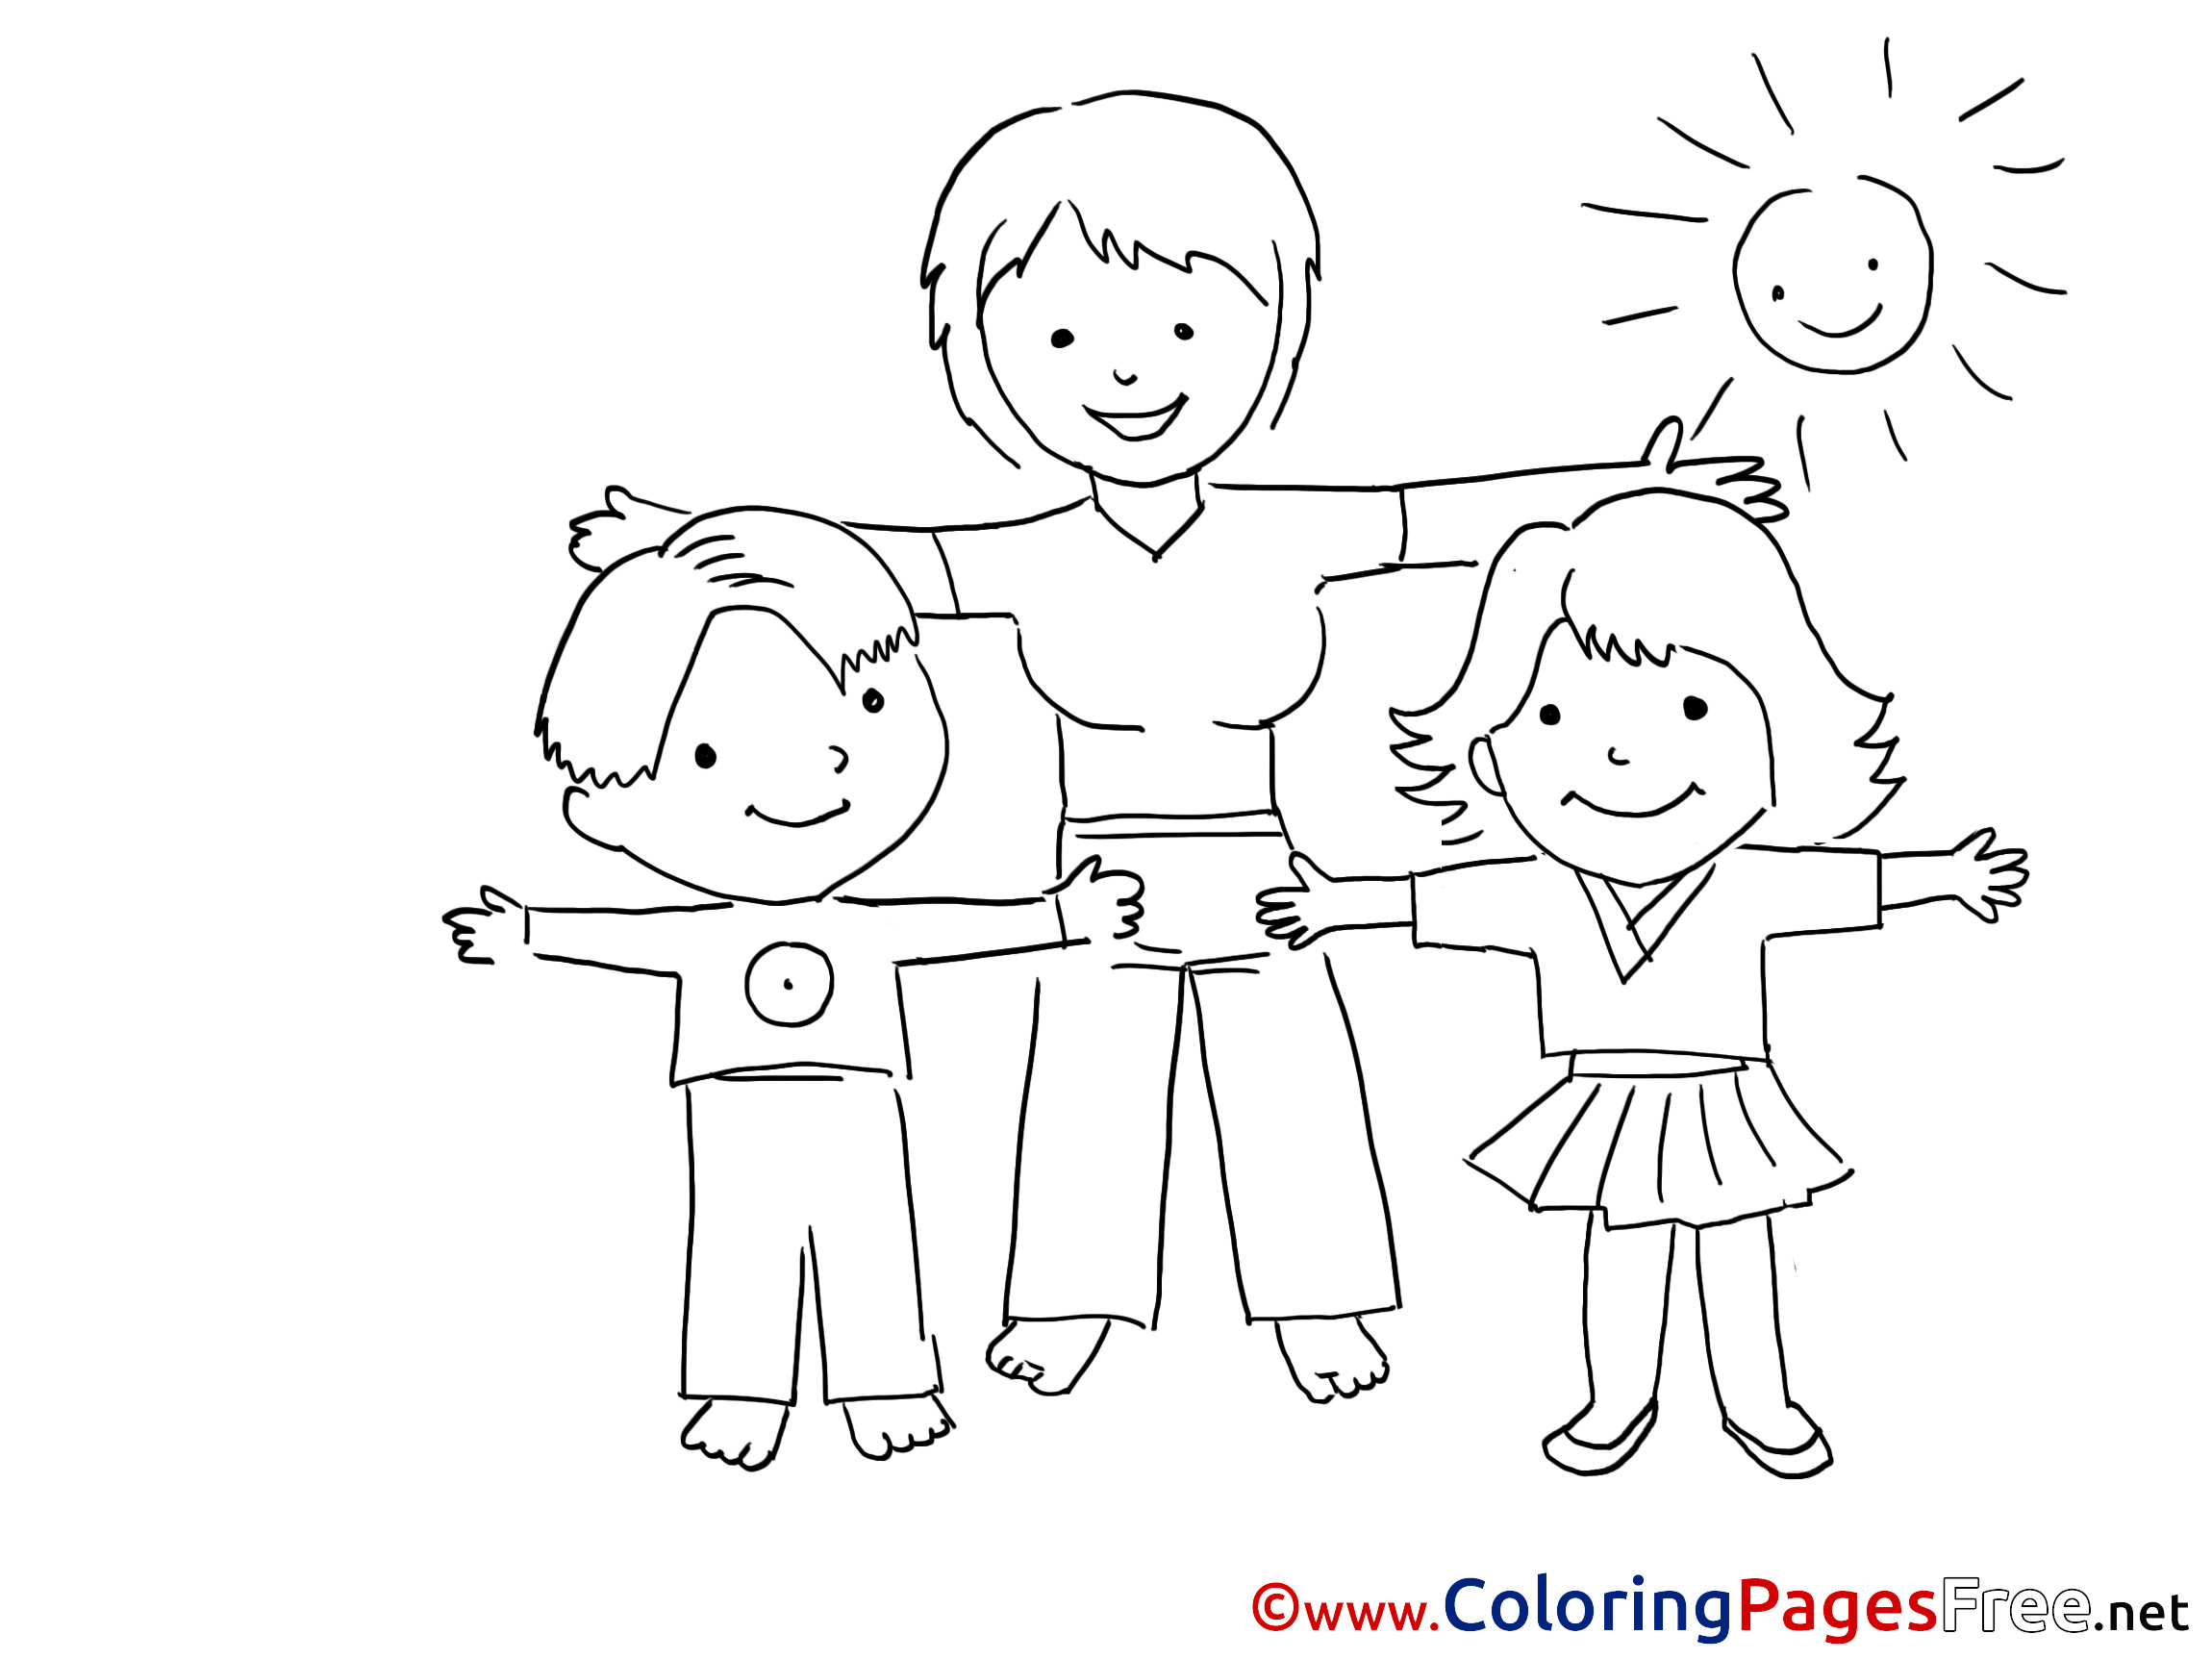 Fitness Coloring Pages For Kids  Exercise Kindergarten Kids free Coloring Page